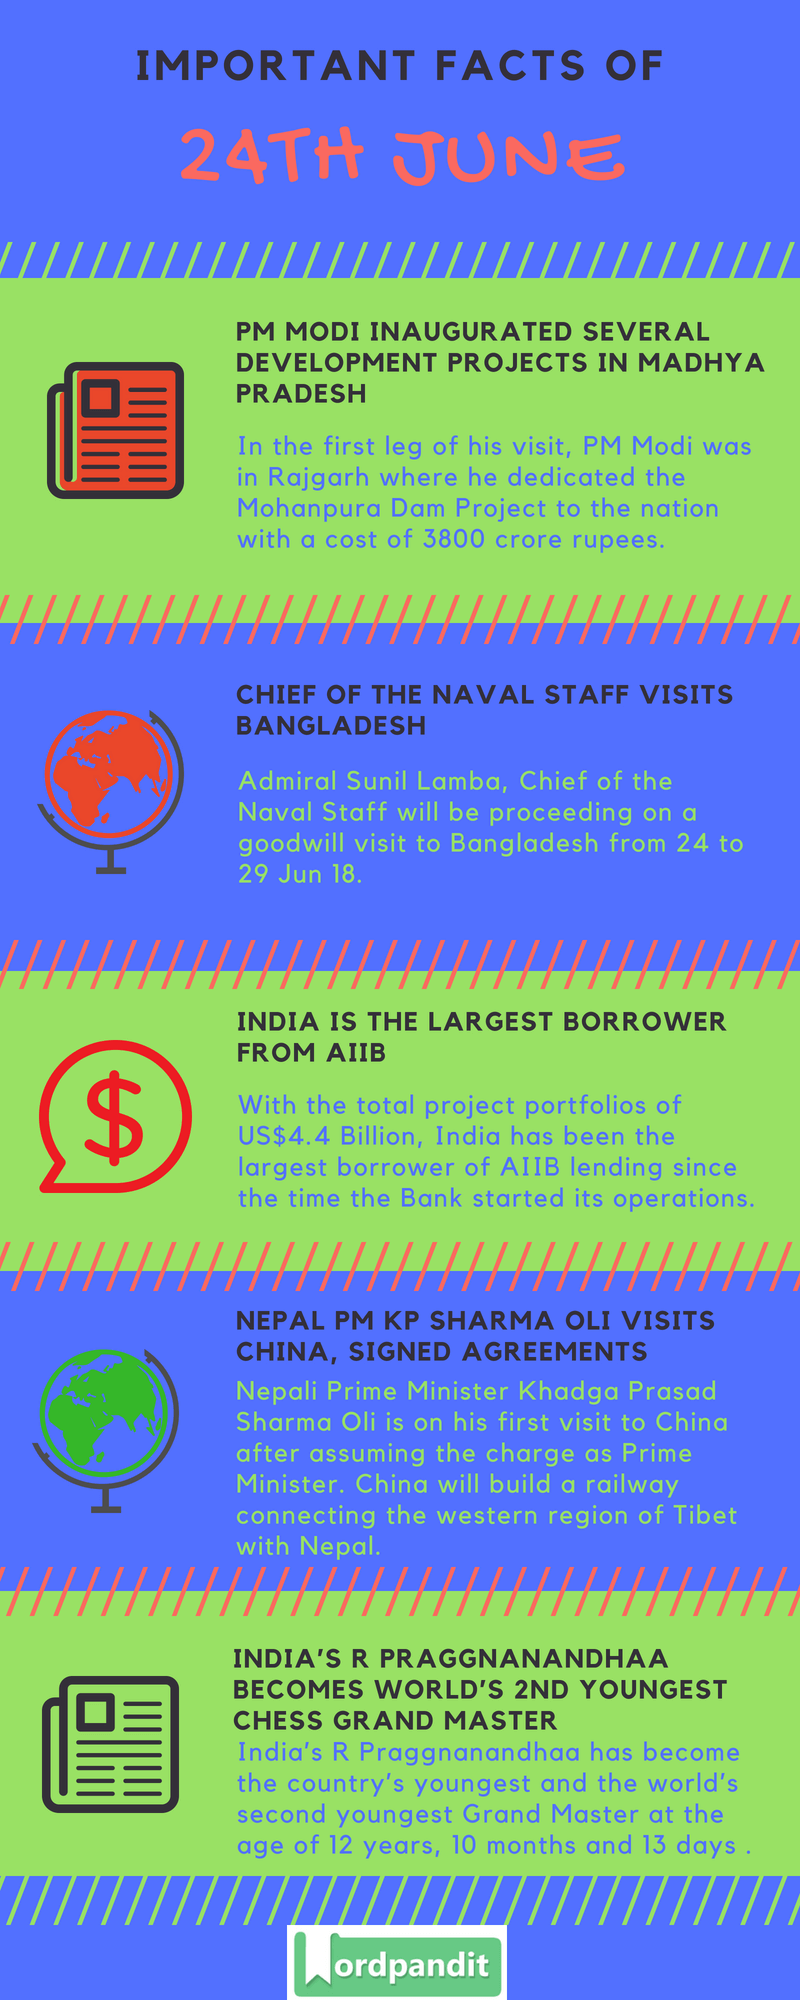 Daily Current Affairs 24 June 2018 Current Affairs Quiz June 24 2018 Current Affairs Infographic